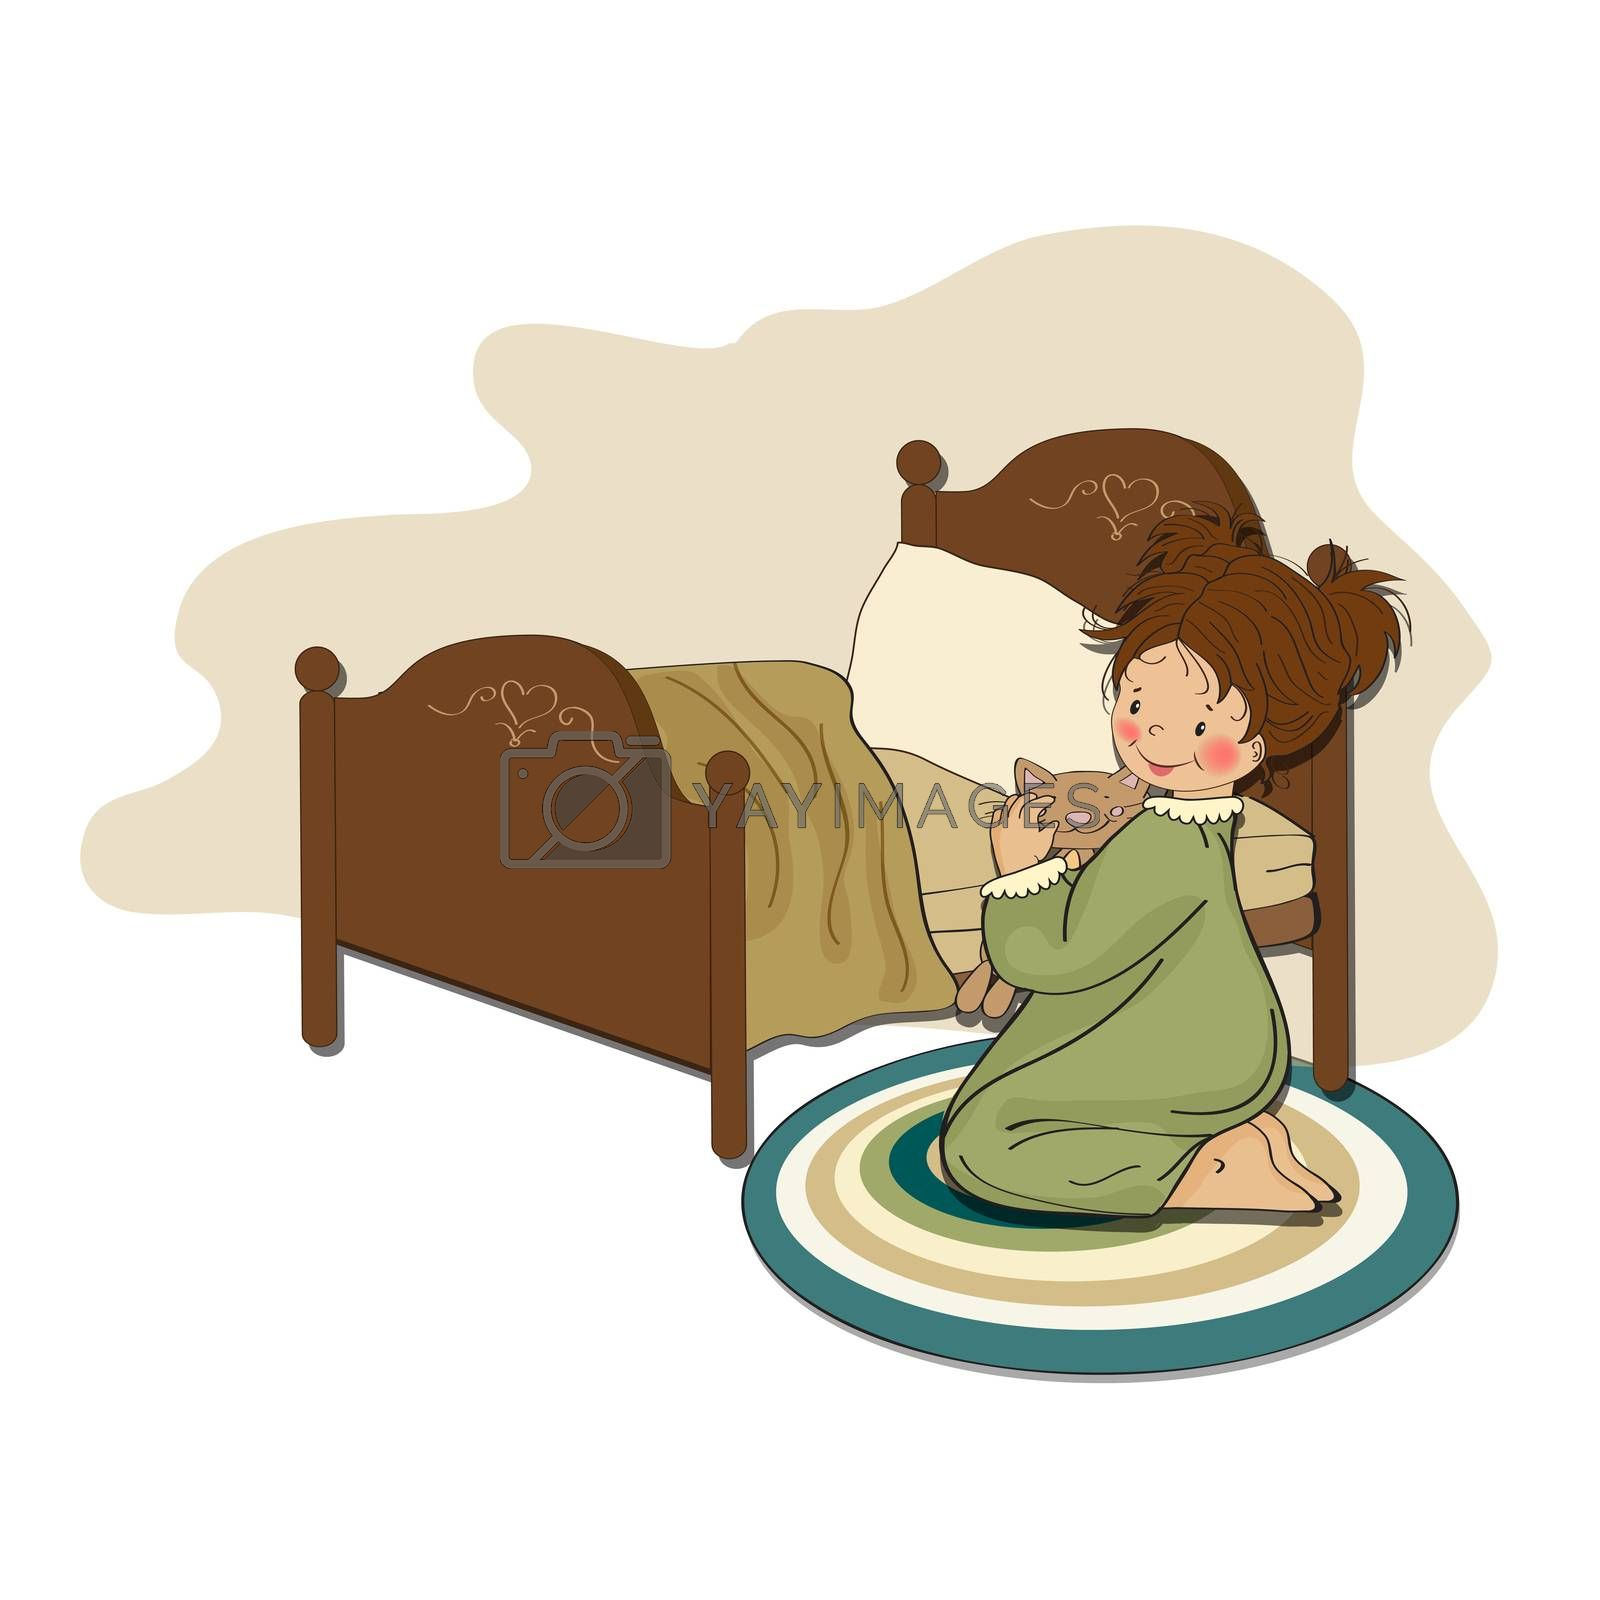 little girl is preparing for sleep, illustration in vector format